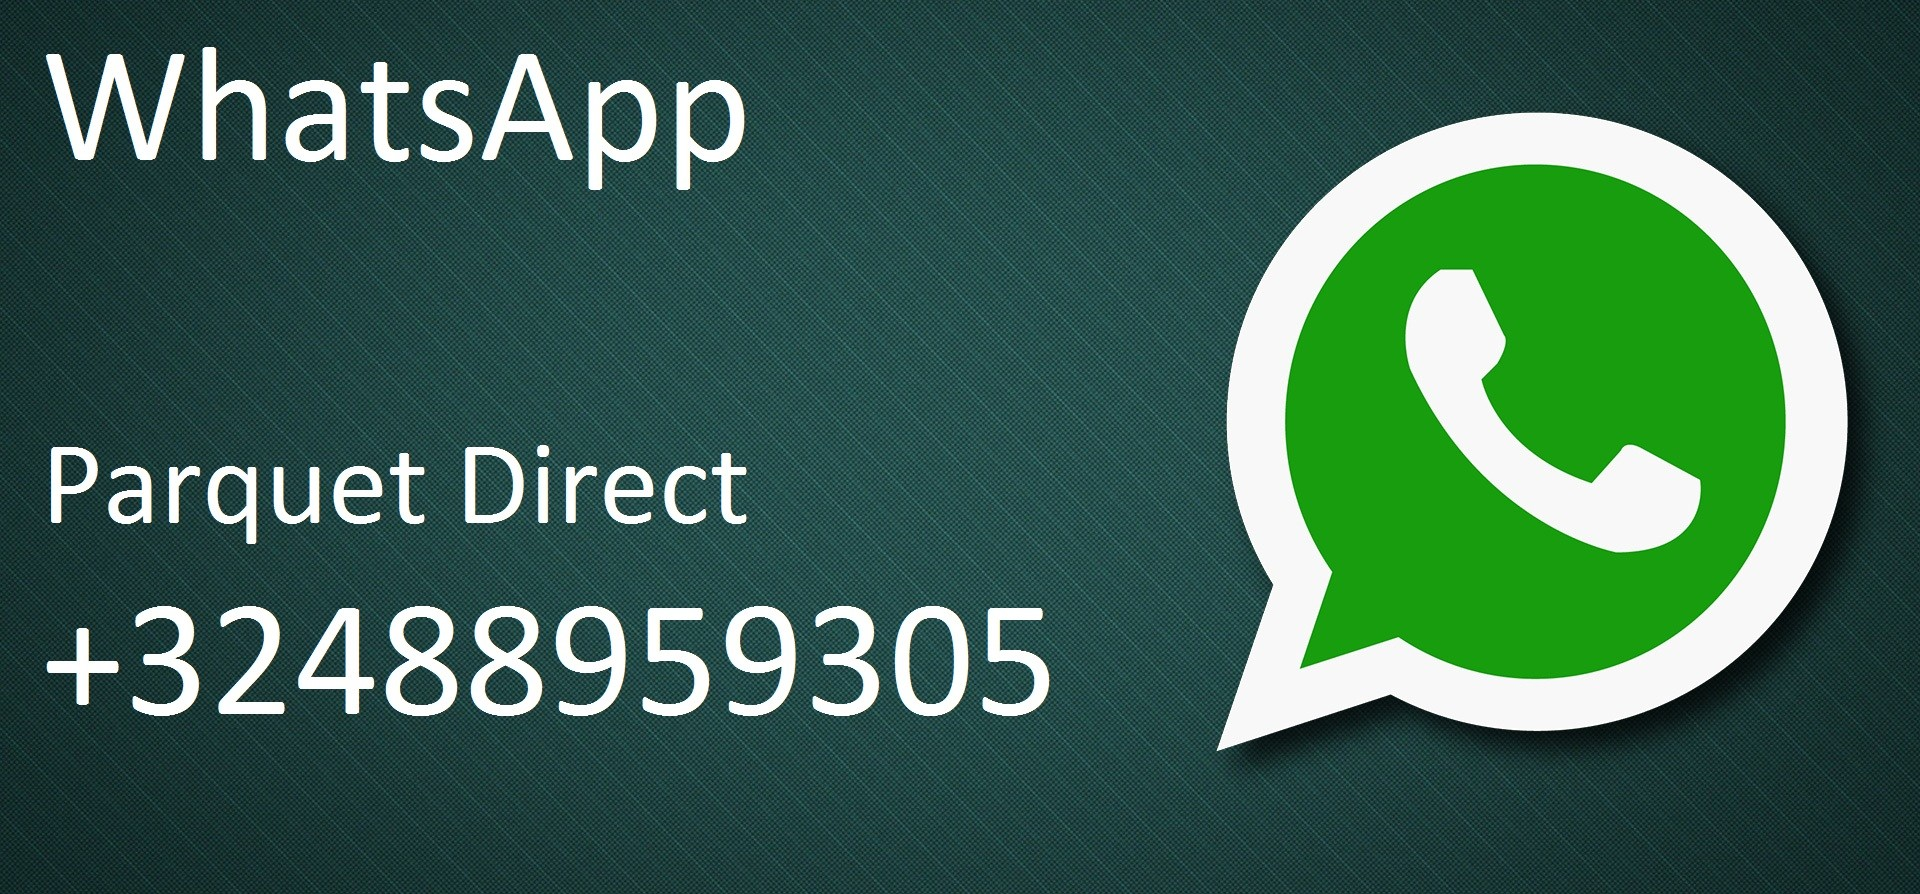 whatsapparquetdirect